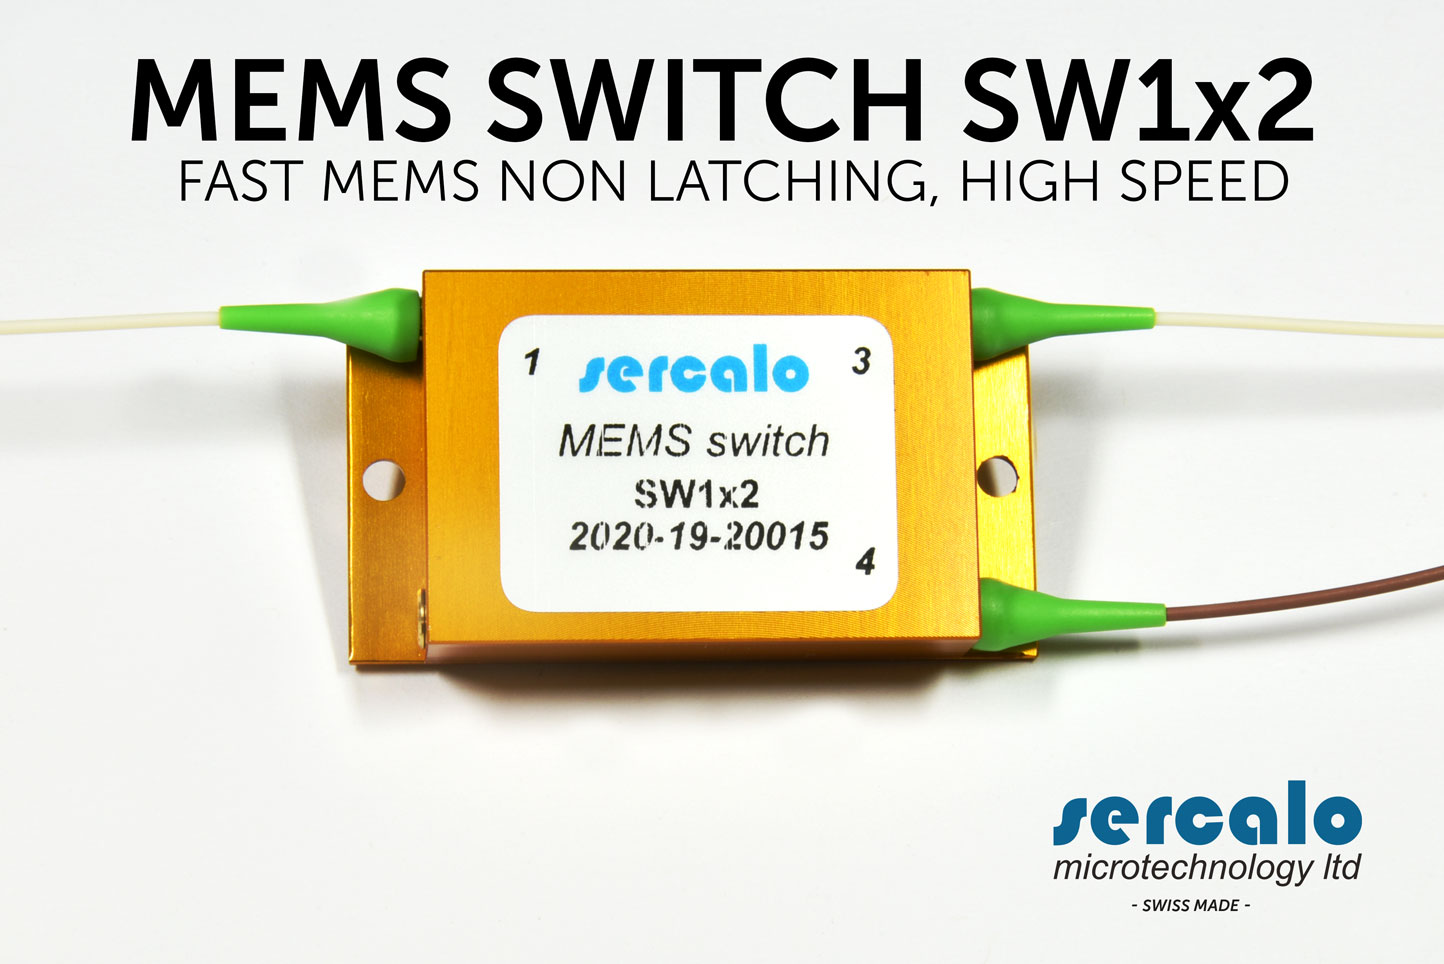 OPTICAL MEMS SWITCH NON LATCHING SW 1x2